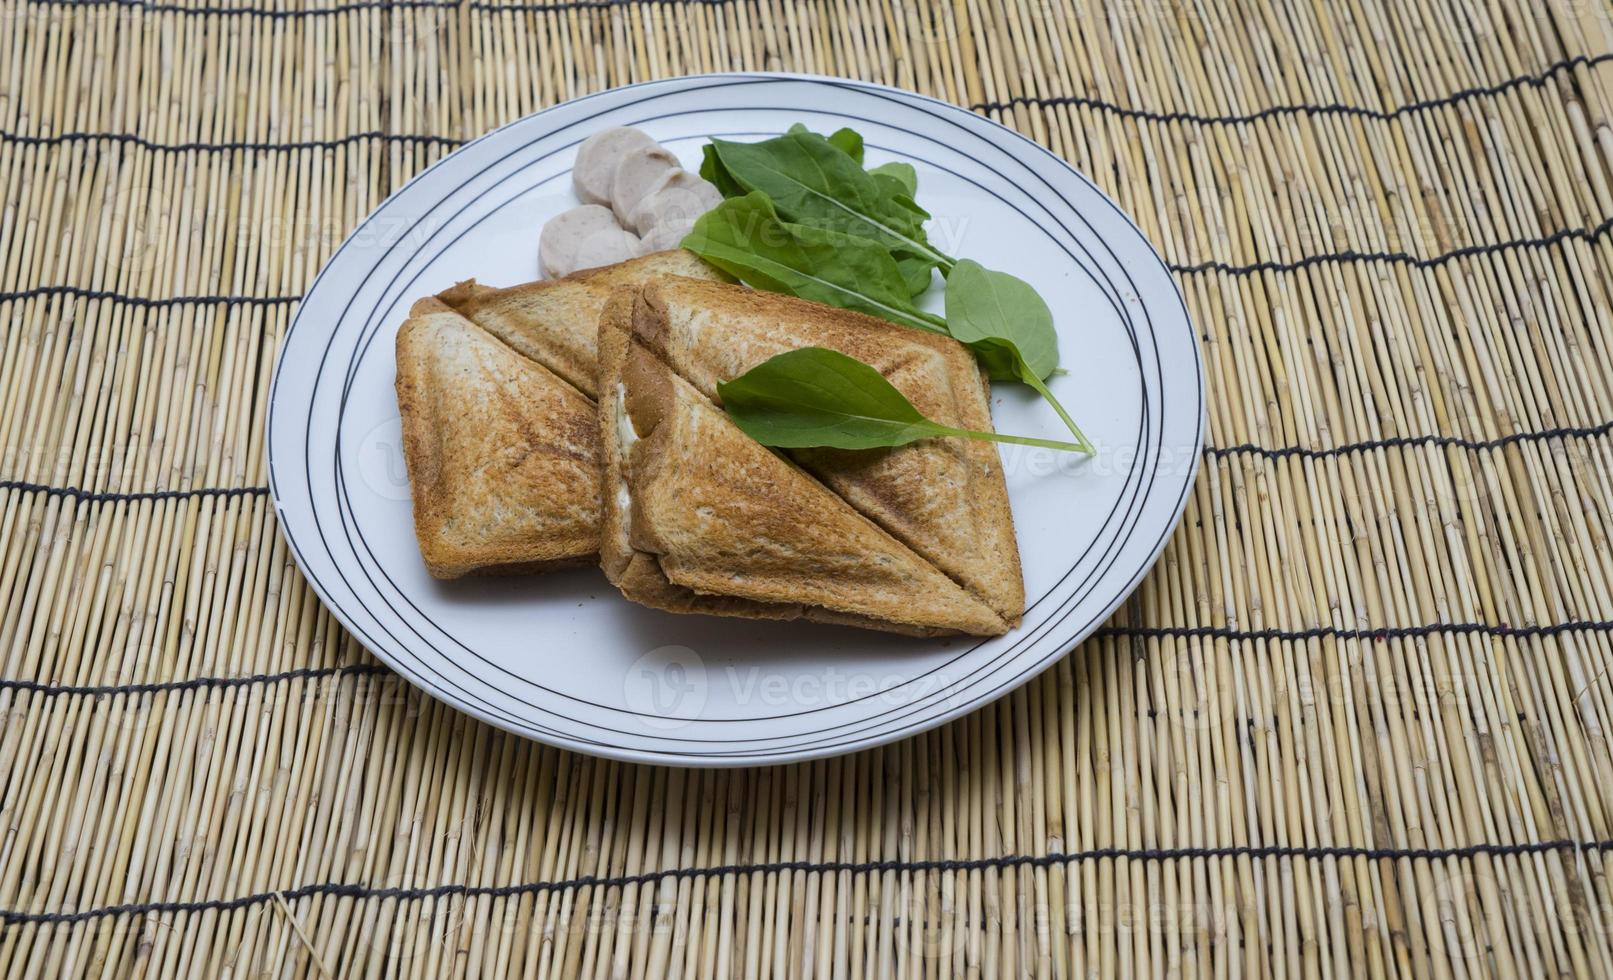 sanwiches in dish on bamboo photo